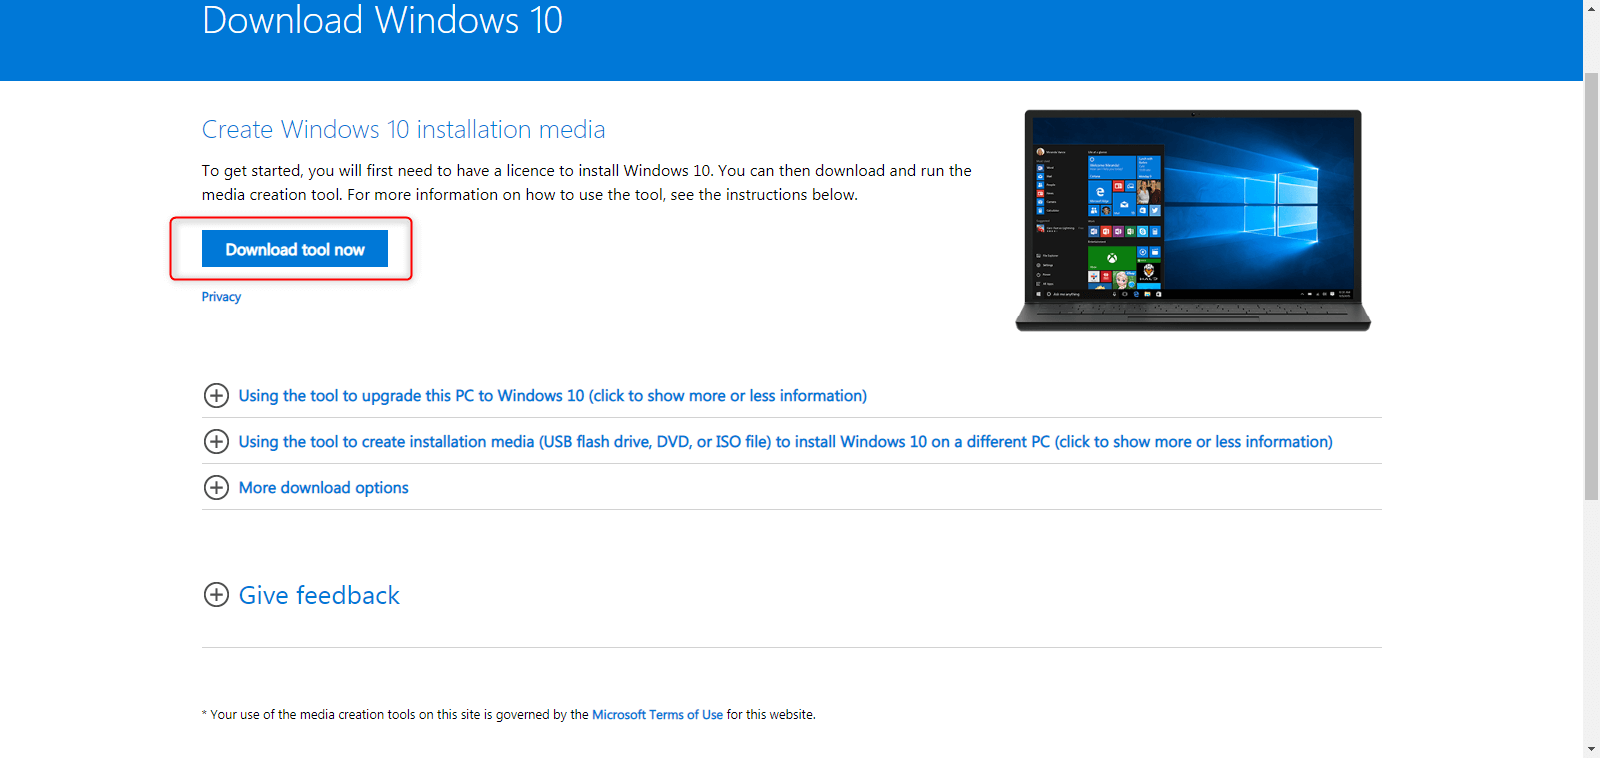 download Windows 10 installation media tool